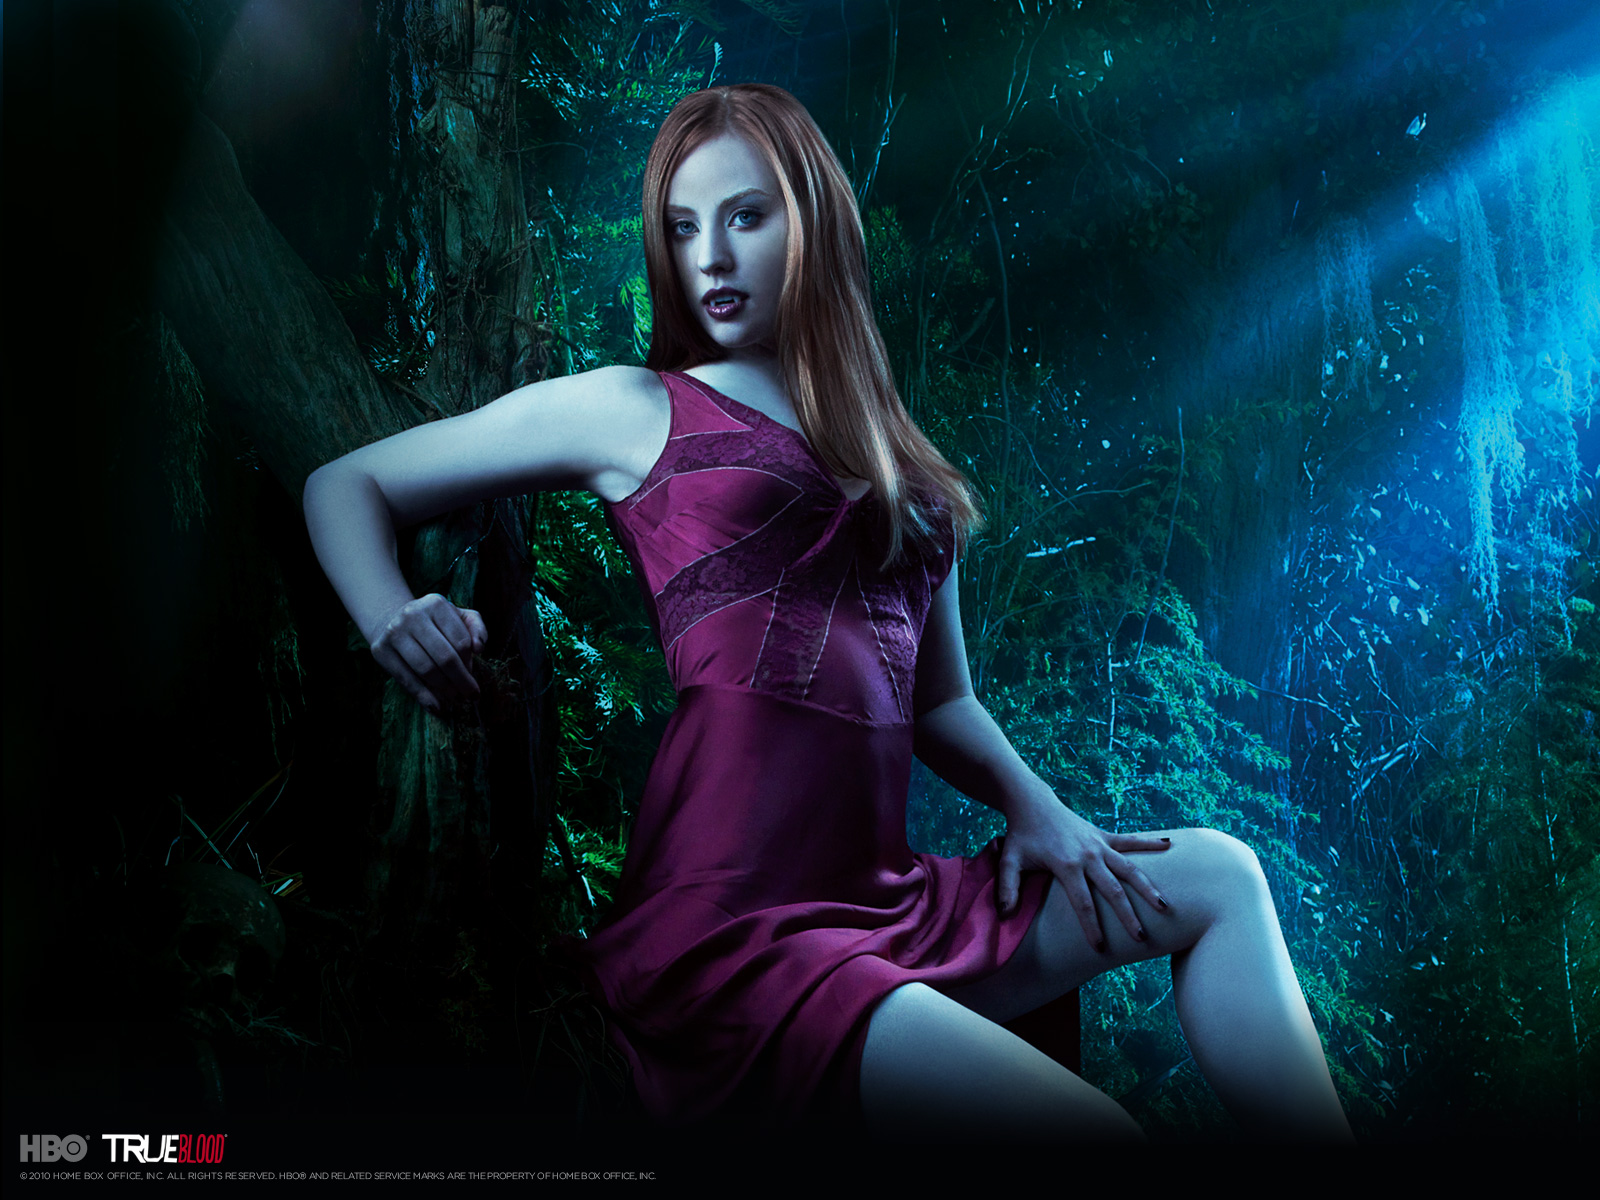 True Blood Wallpaper and Background Image | 1600x1200 | ID:96344